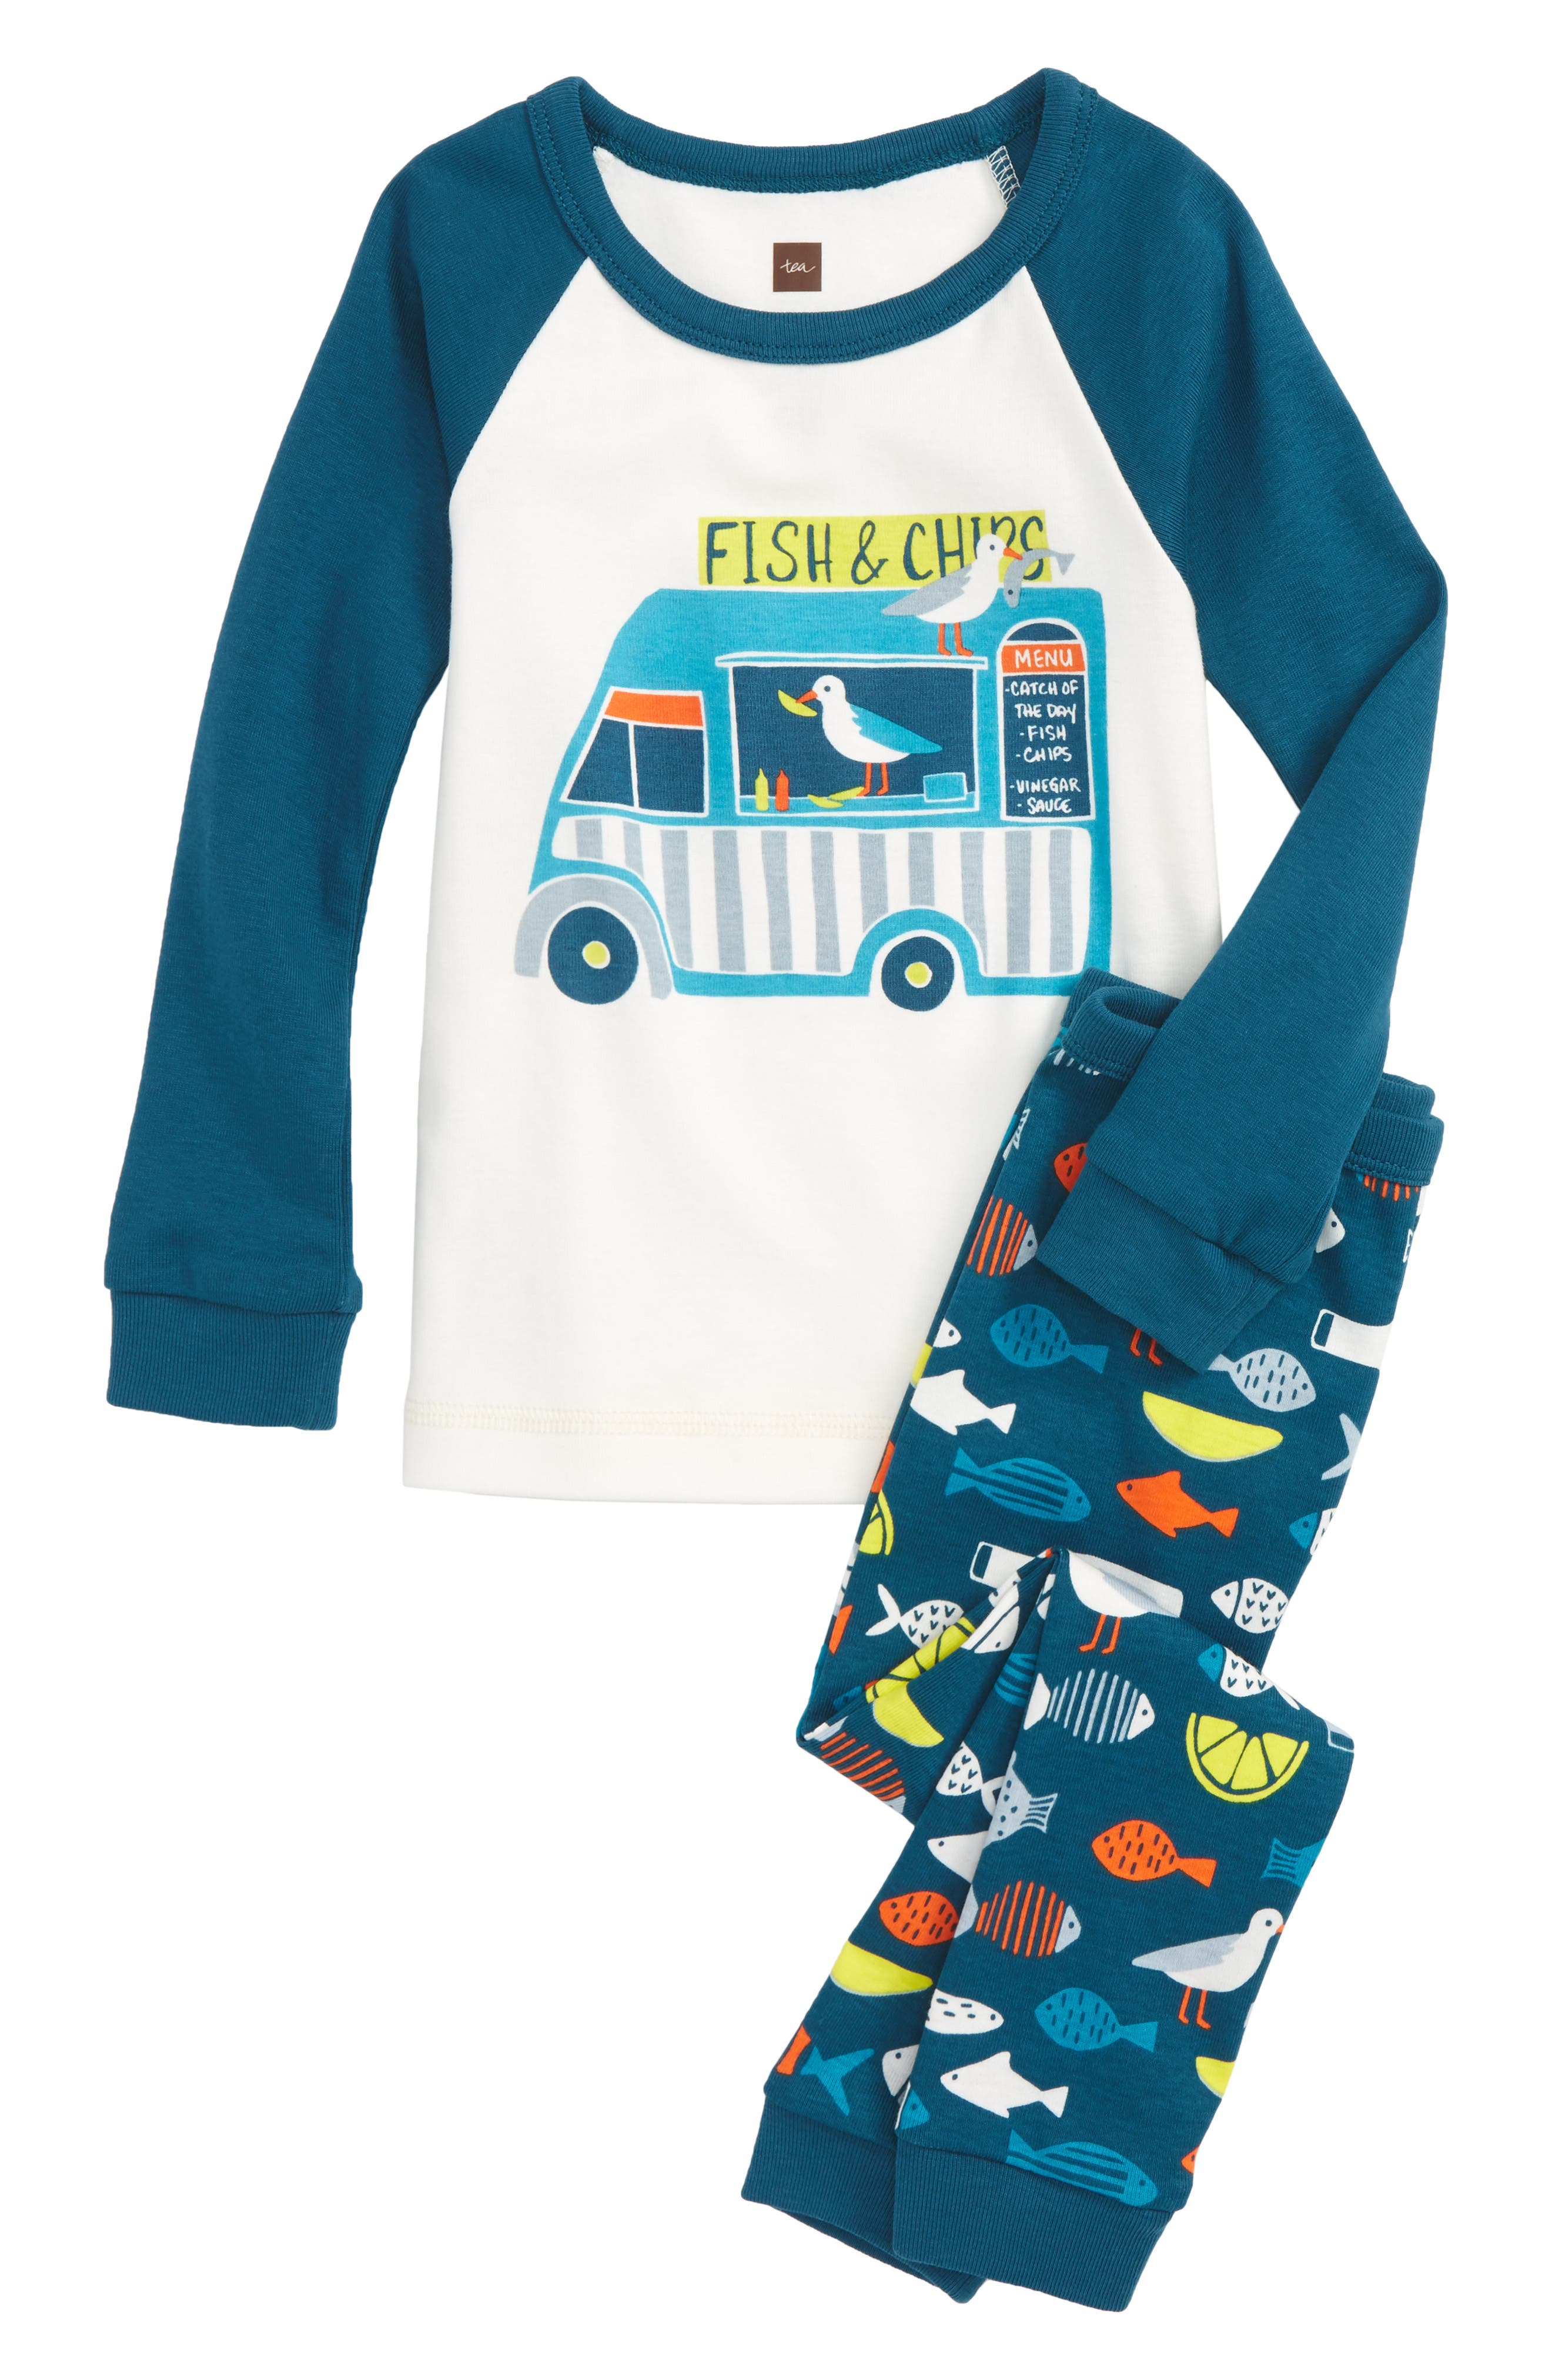 Fish & Chips Fitted Two-Piece Pajamas,                             Main thumbnail 1, color,                             Chalk